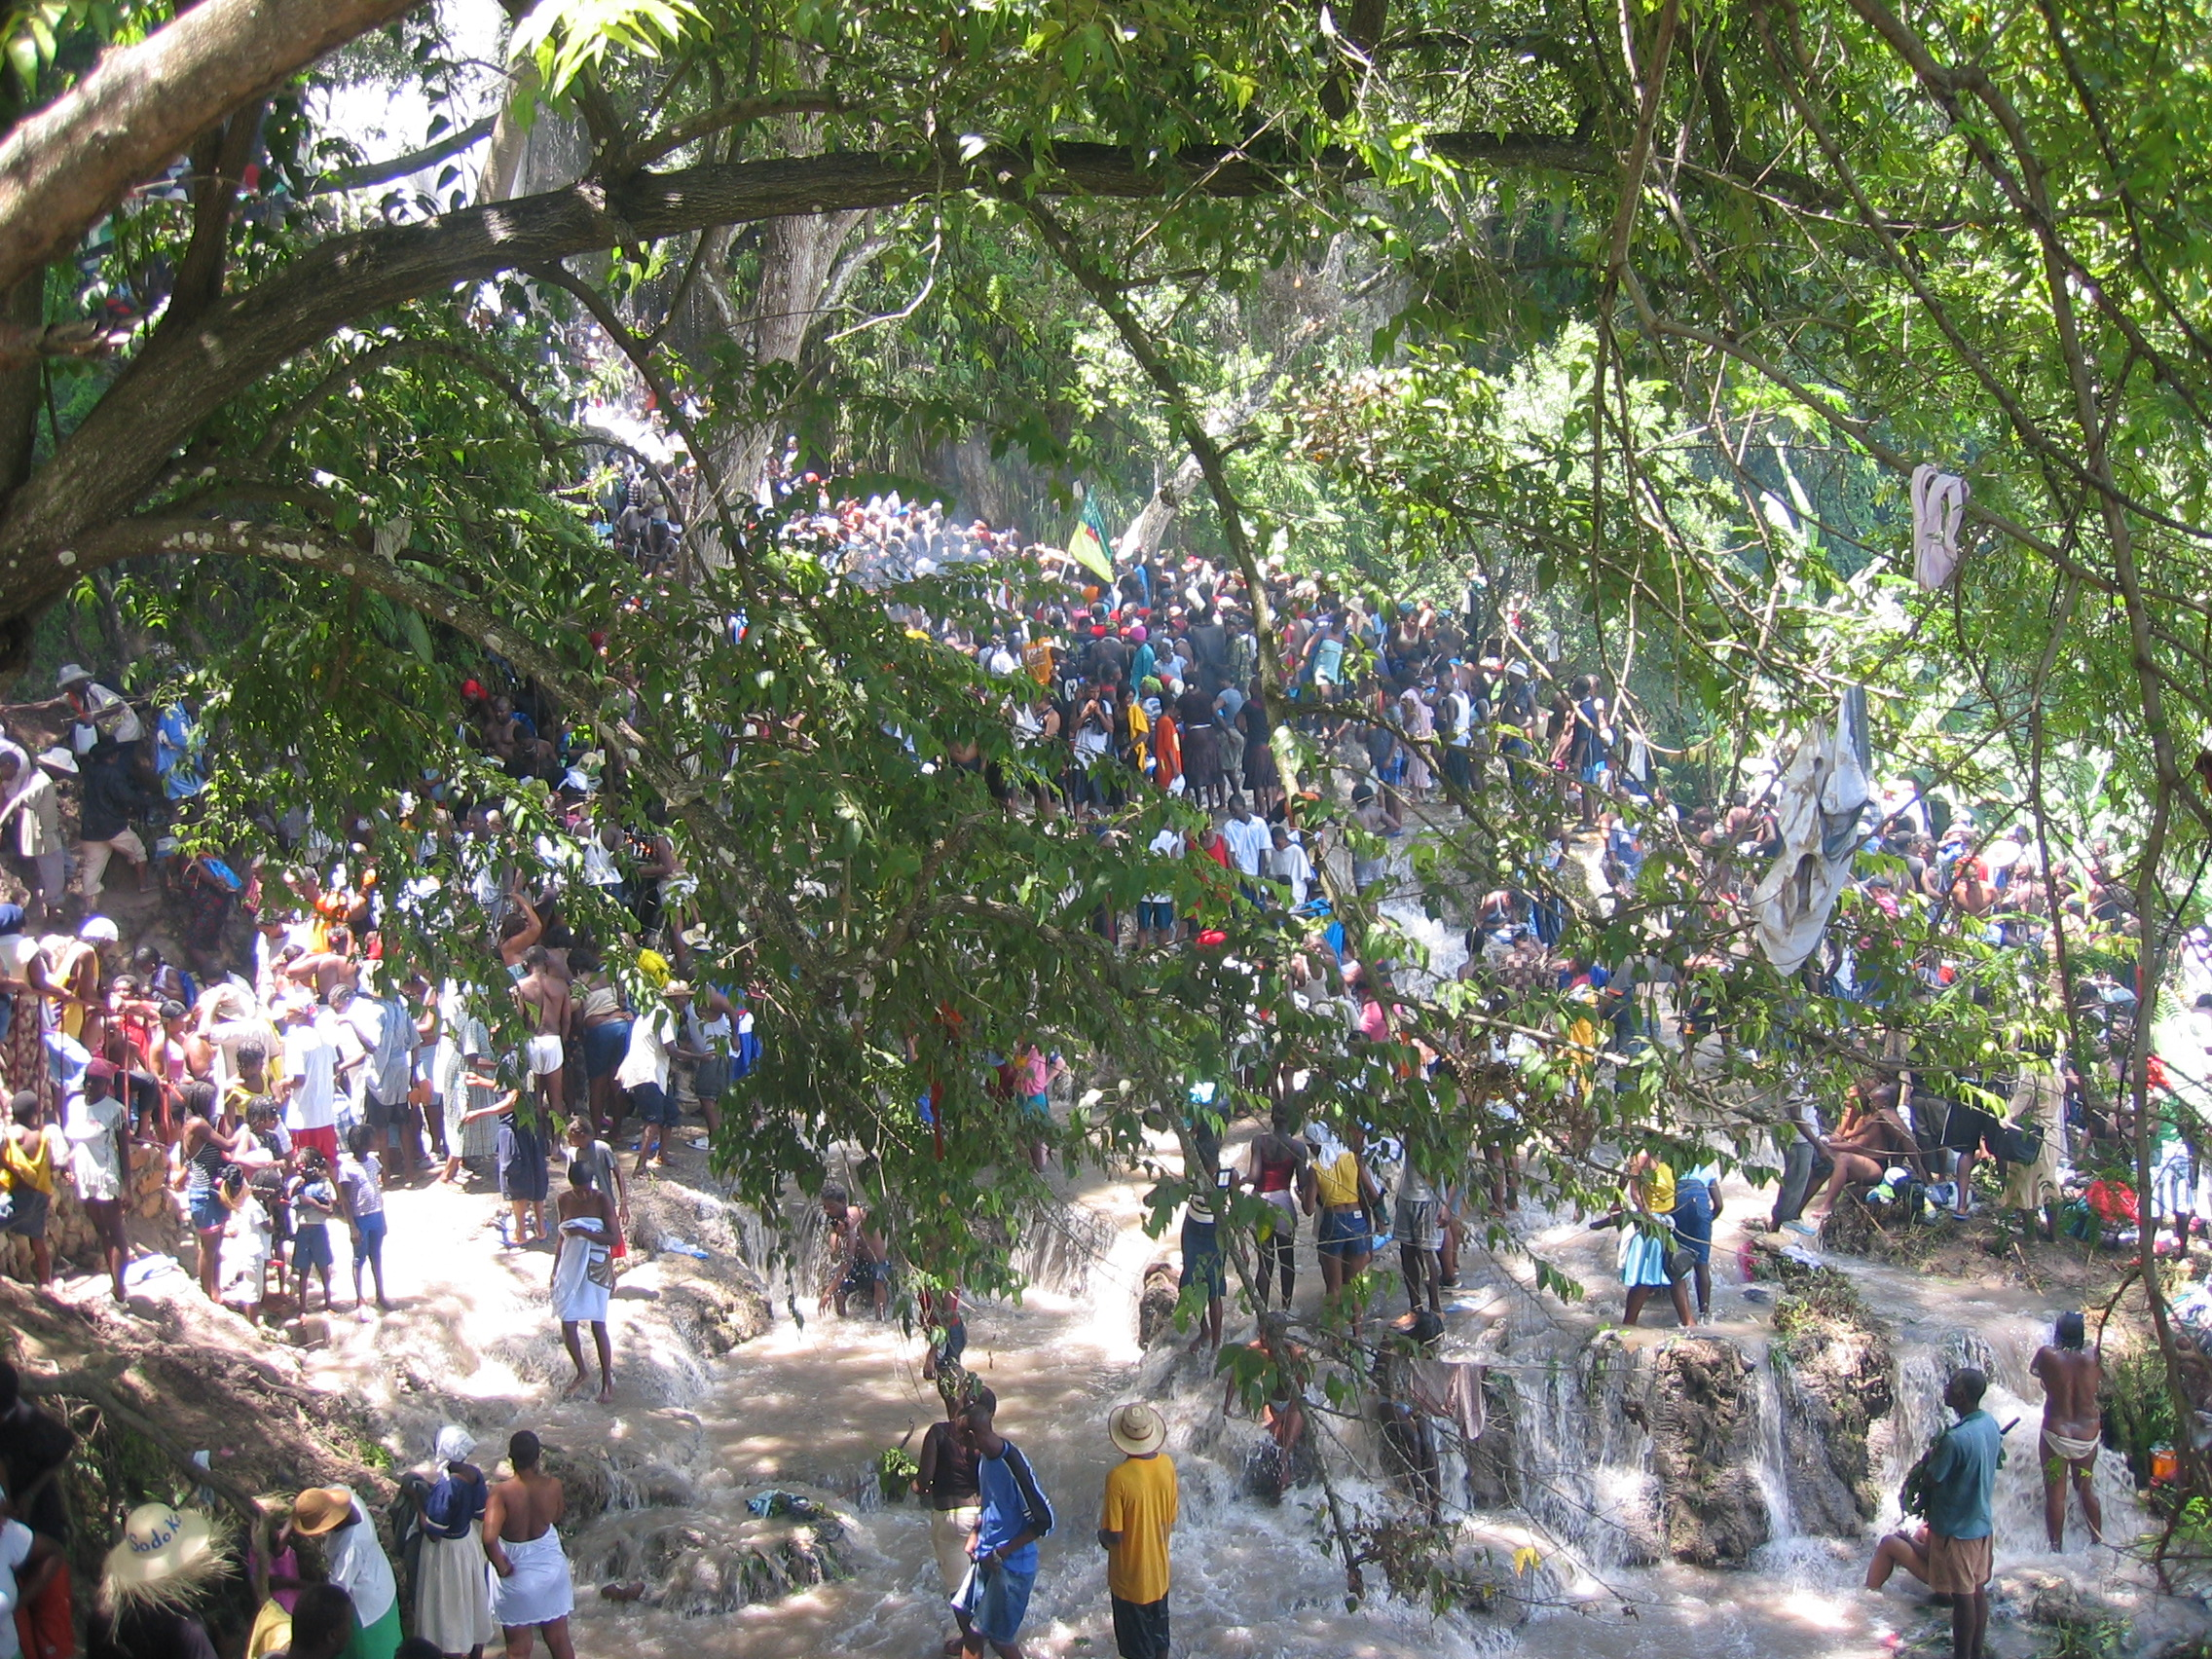 The masses of people in the sacred falls.